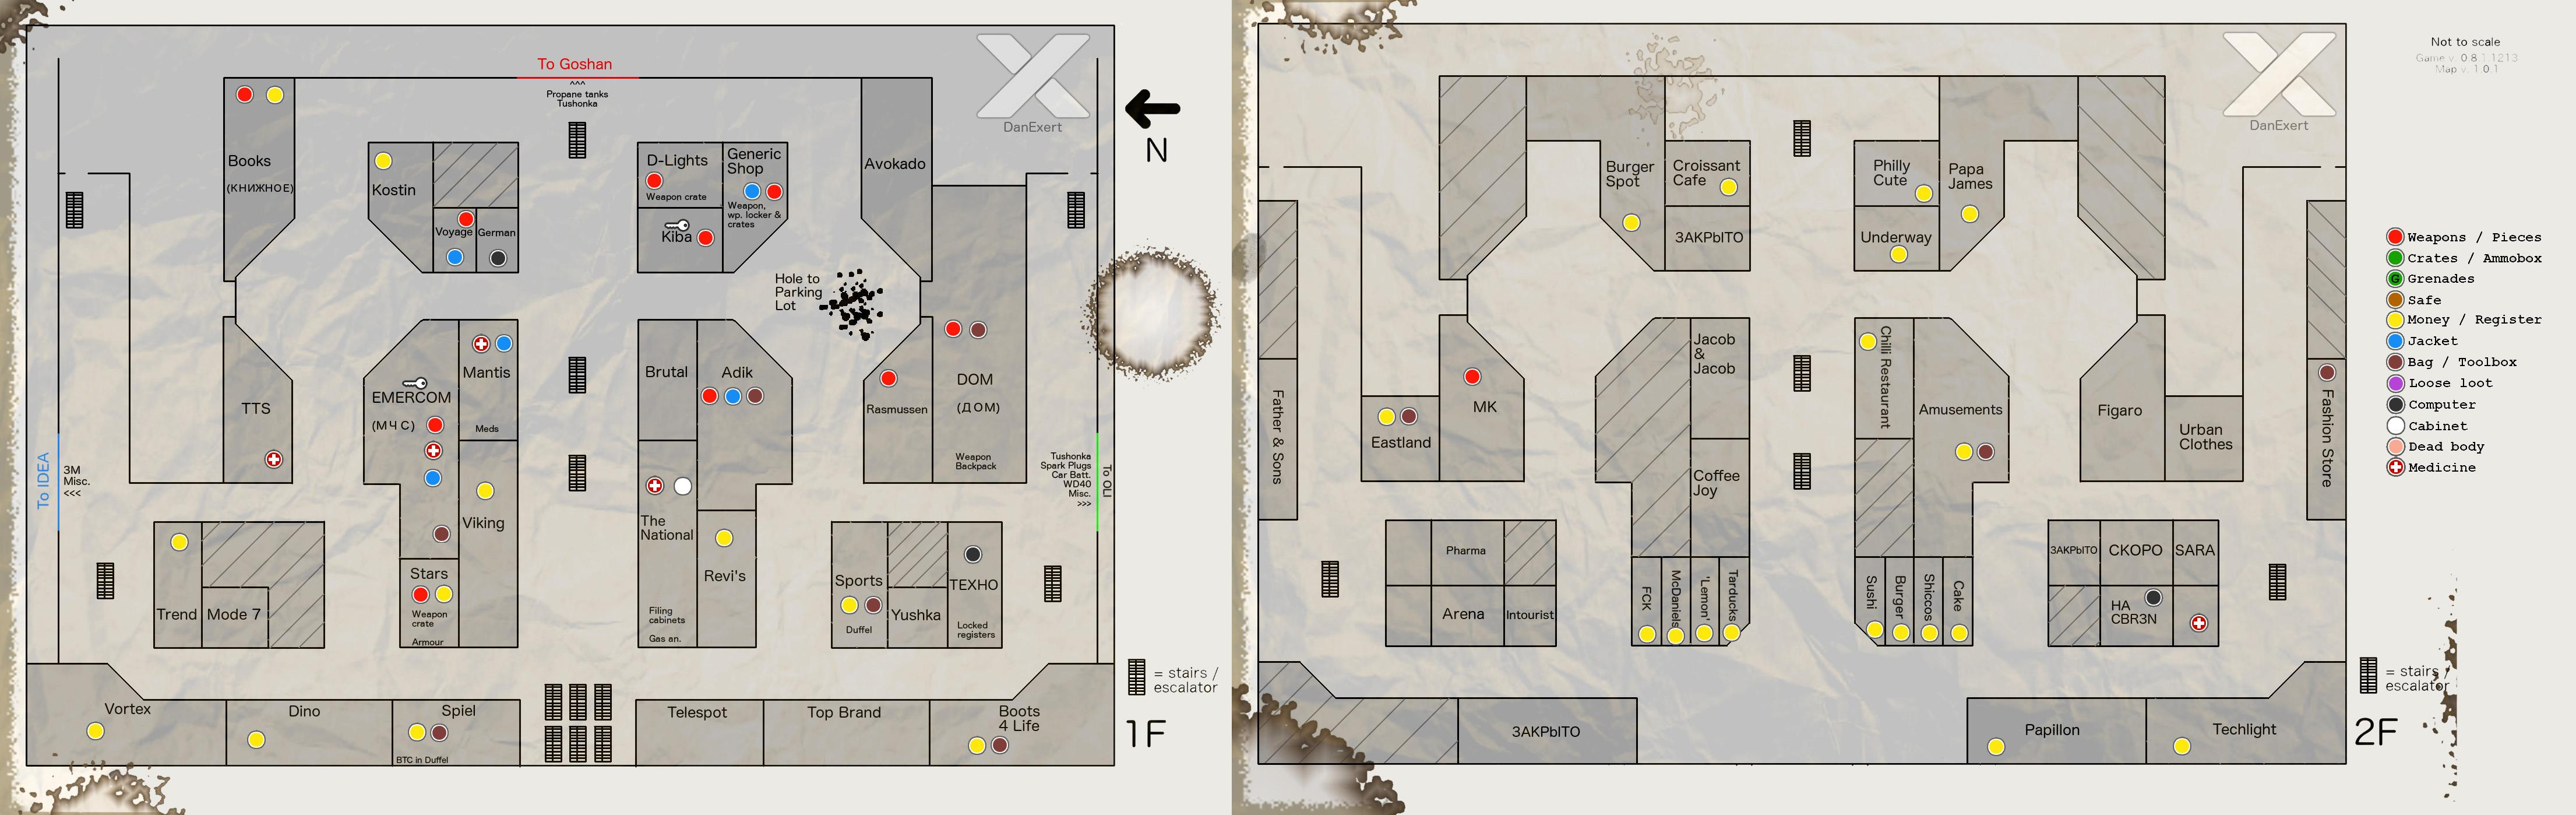 Made maps for Interchange Mall - Page 2 - General game forum